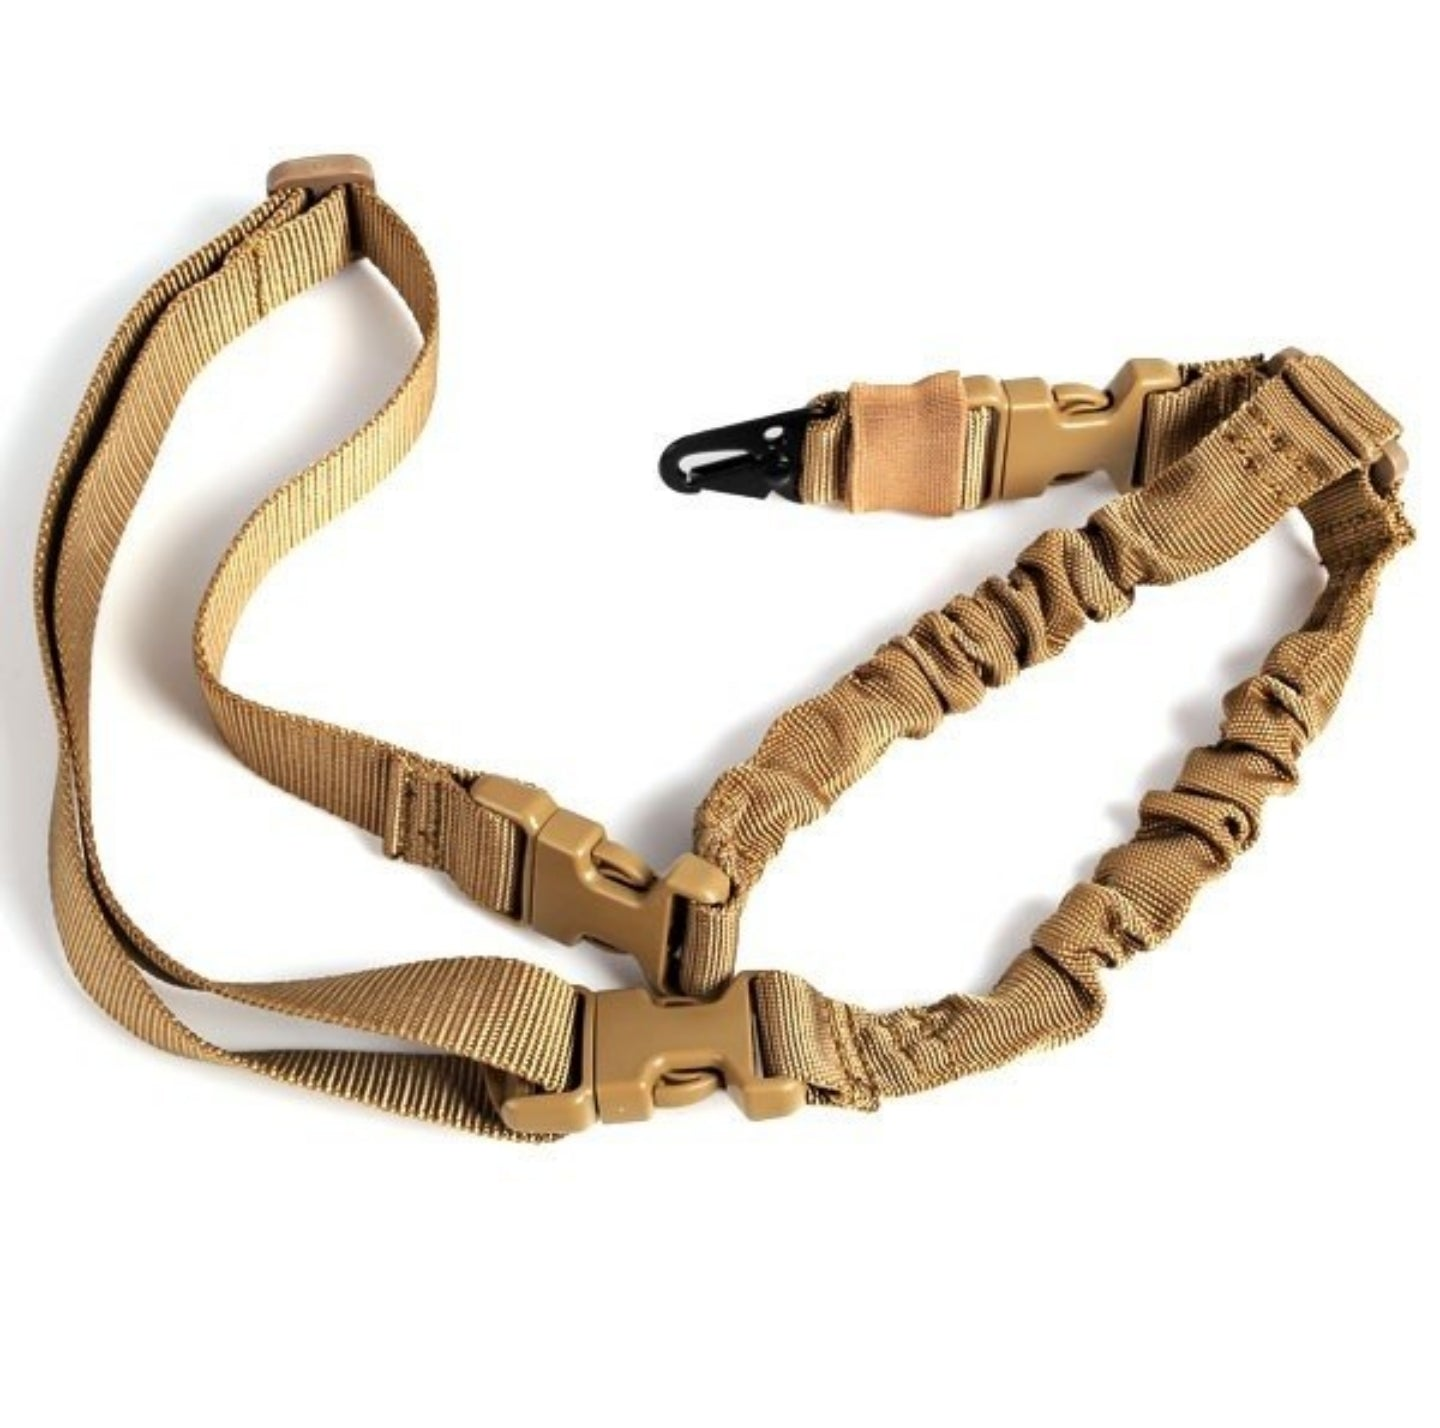 Rifle sling ... single point